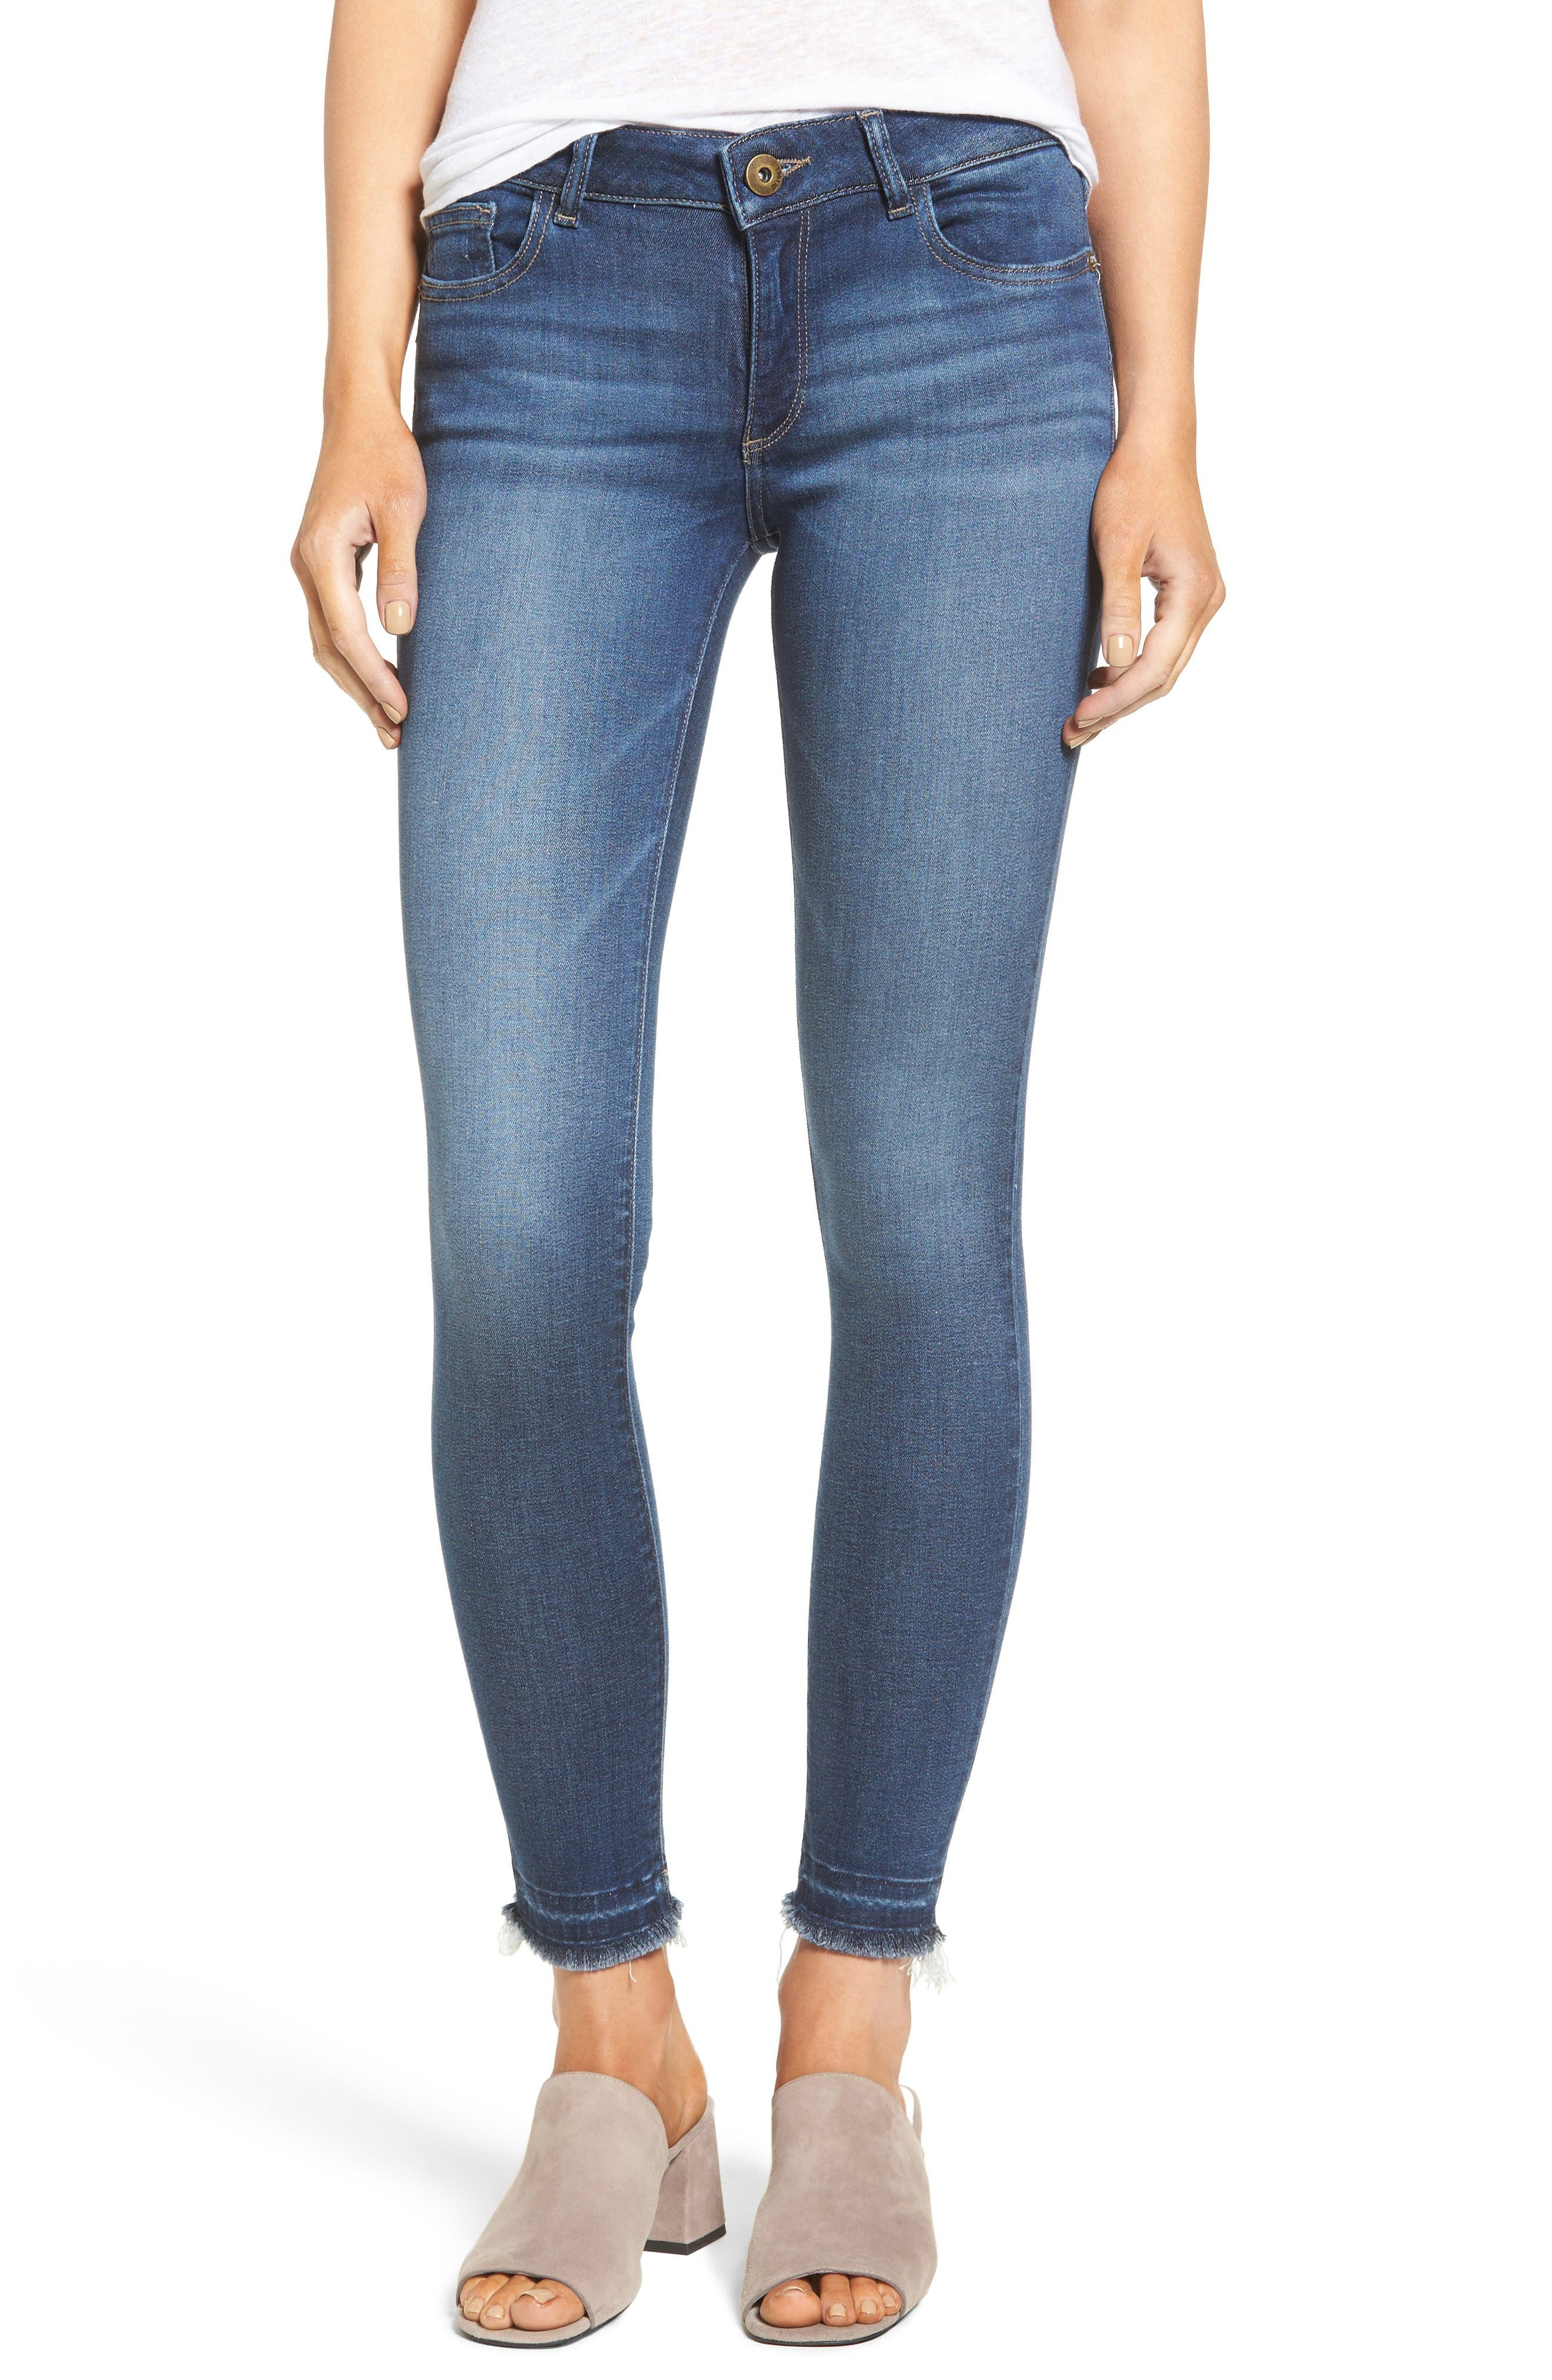 Emma Power Legging Jeans,                         Main,                         color, Quilter